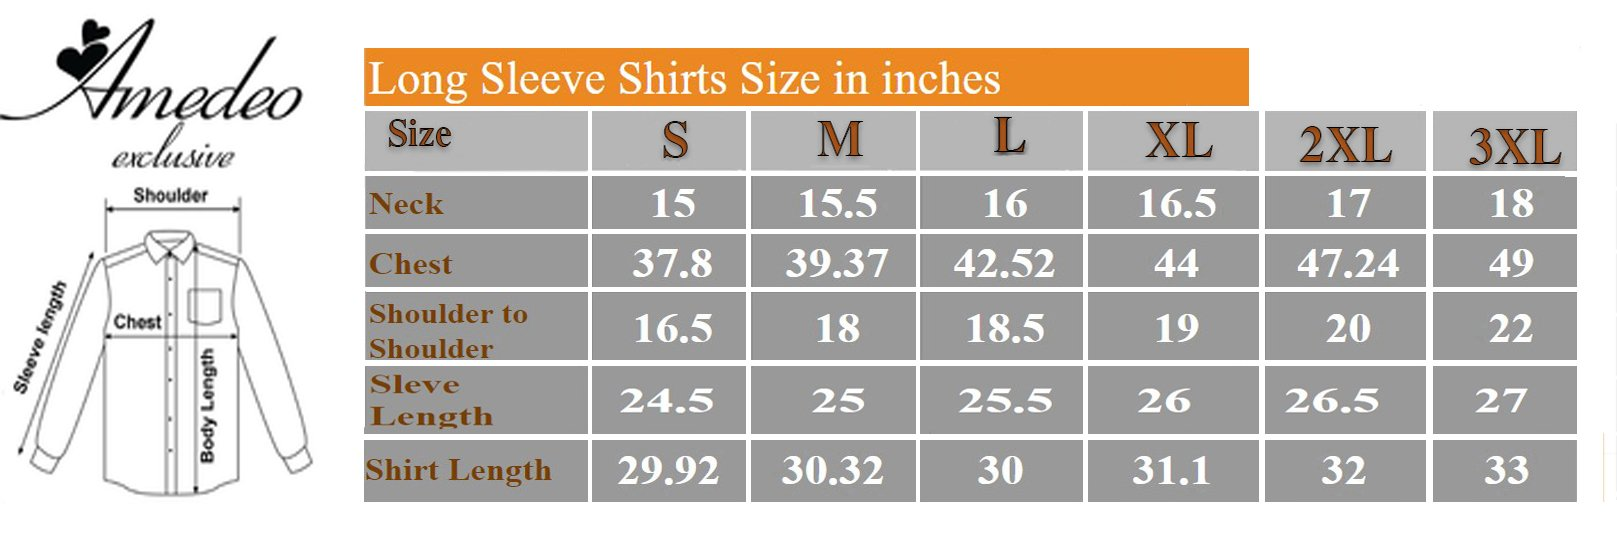 Beige Mens Slim Fit Designer Dress Shirt - tailored Cotton Shirts for Work and Casual Wear - Amedeo Exclusive